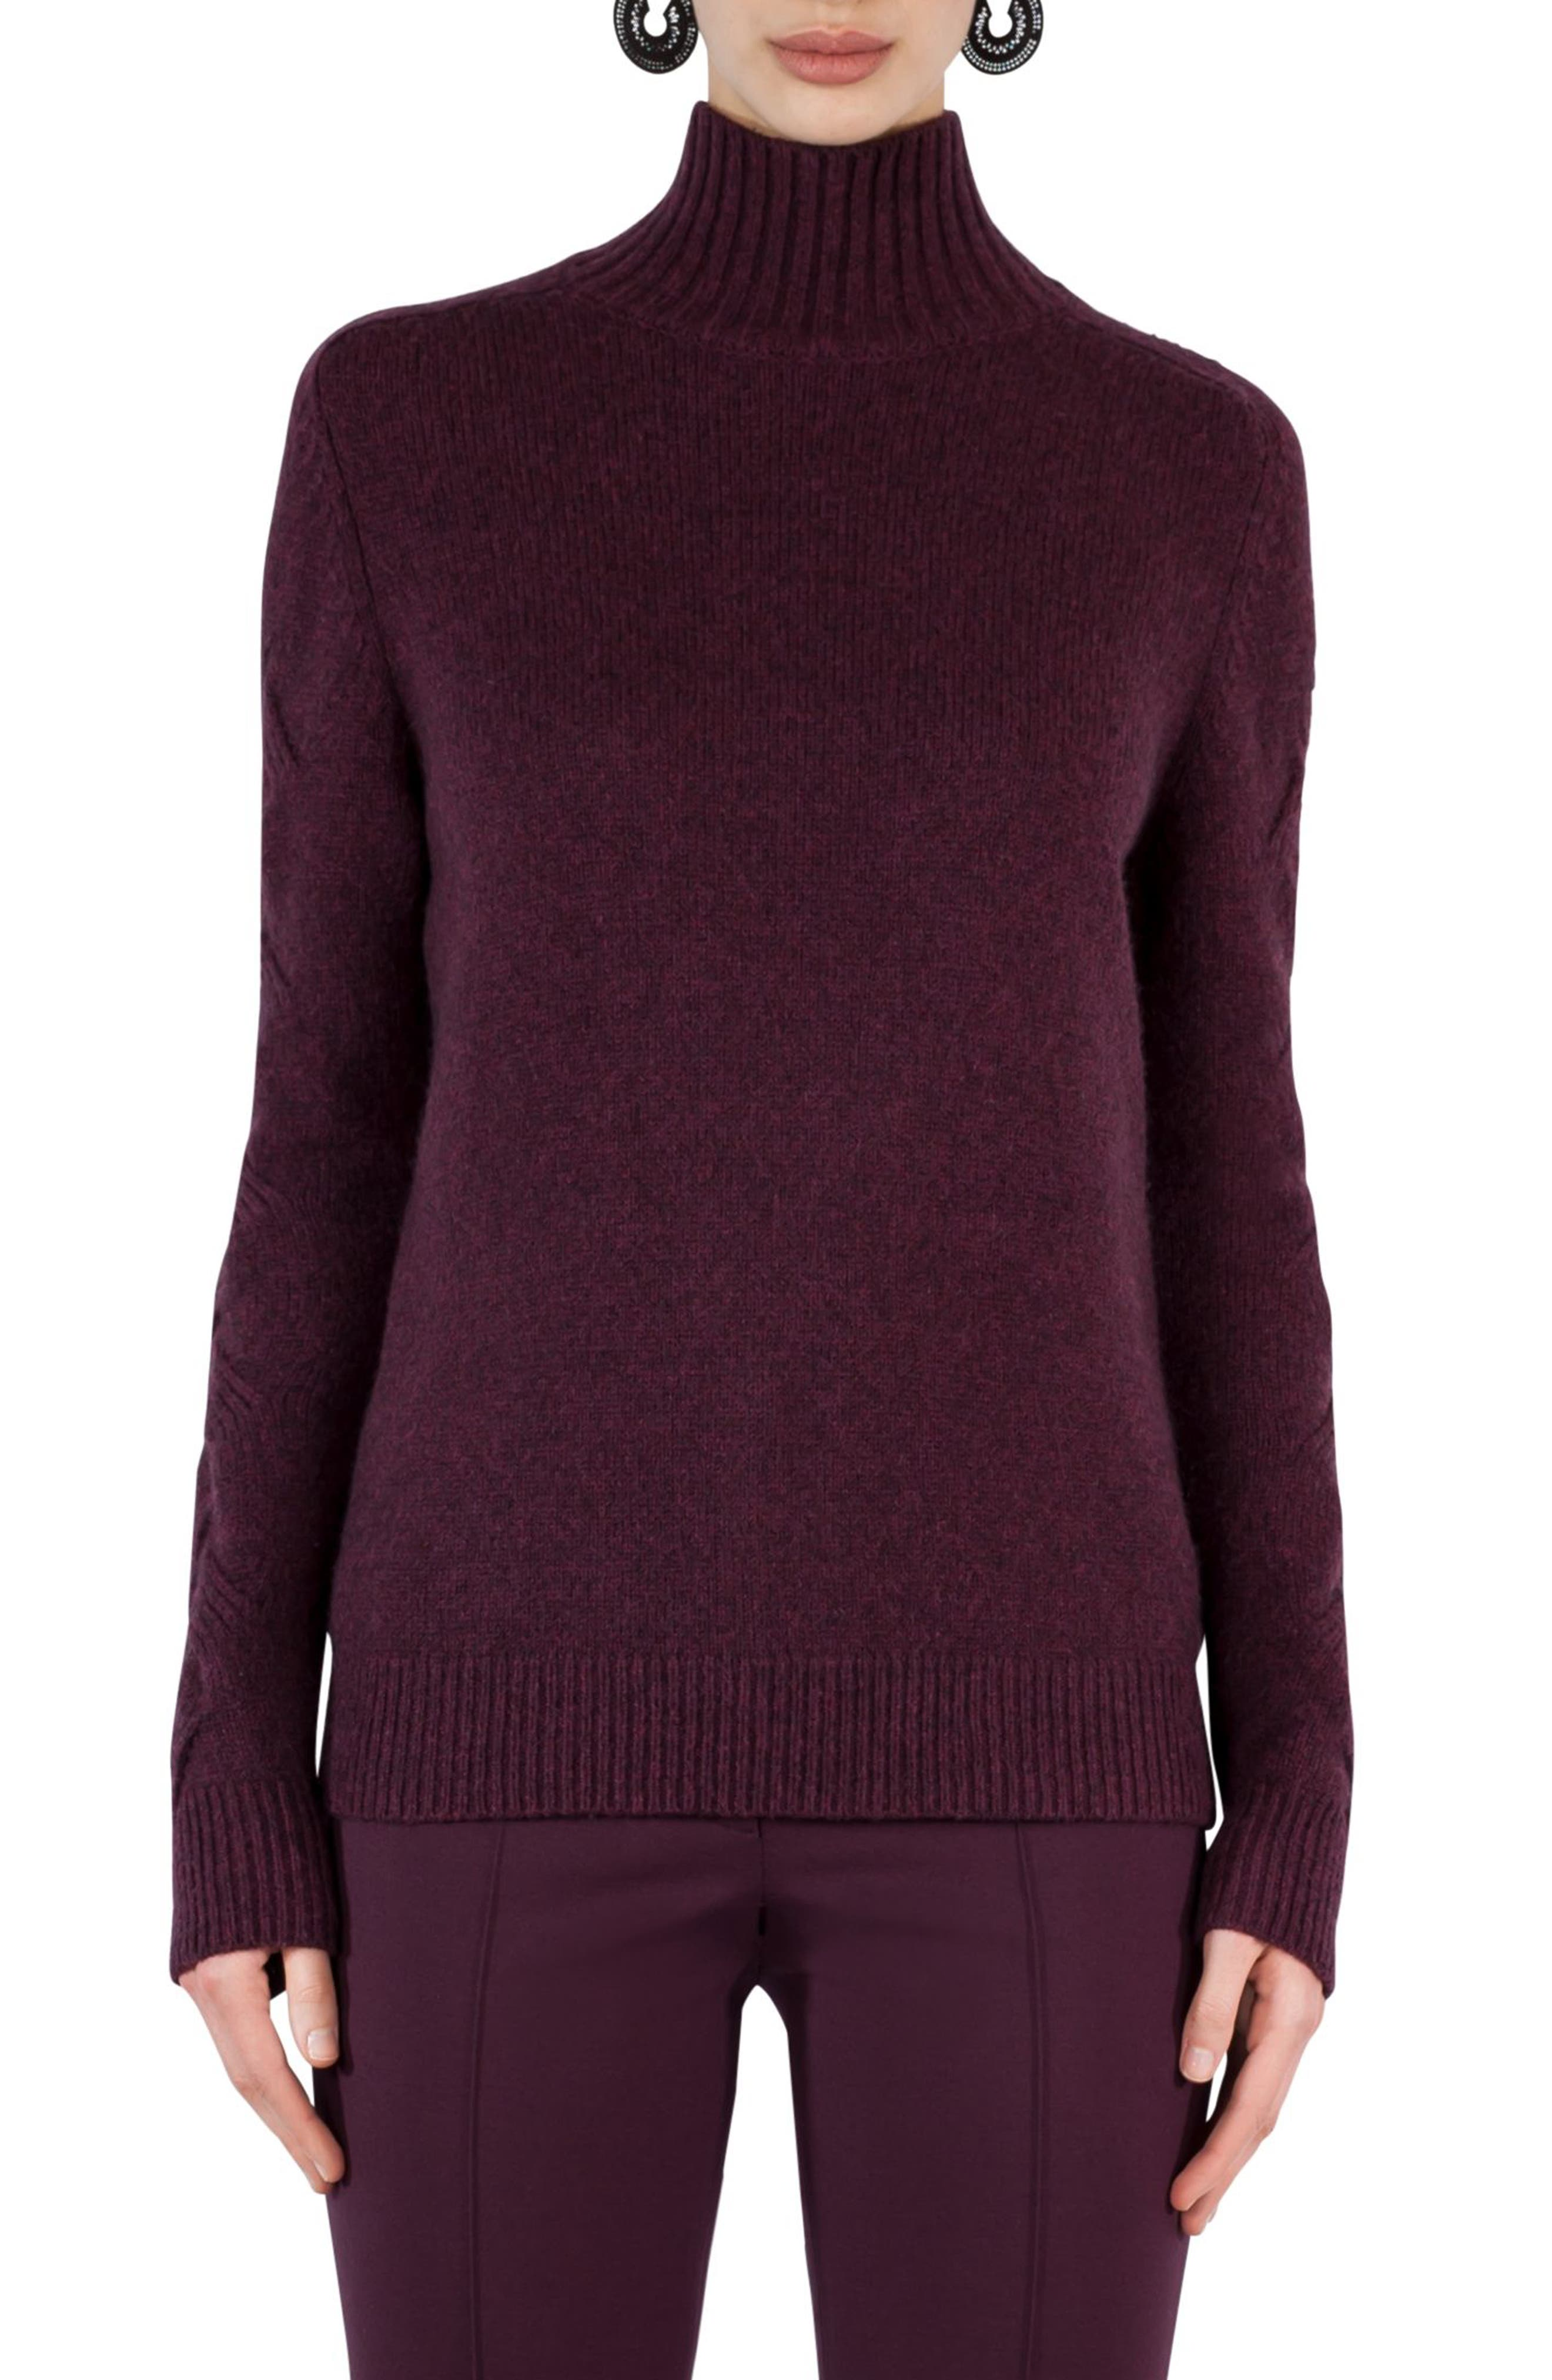 Alternate Image 1 Selected - Akris punto Wool Blend Turtleneck Sweater